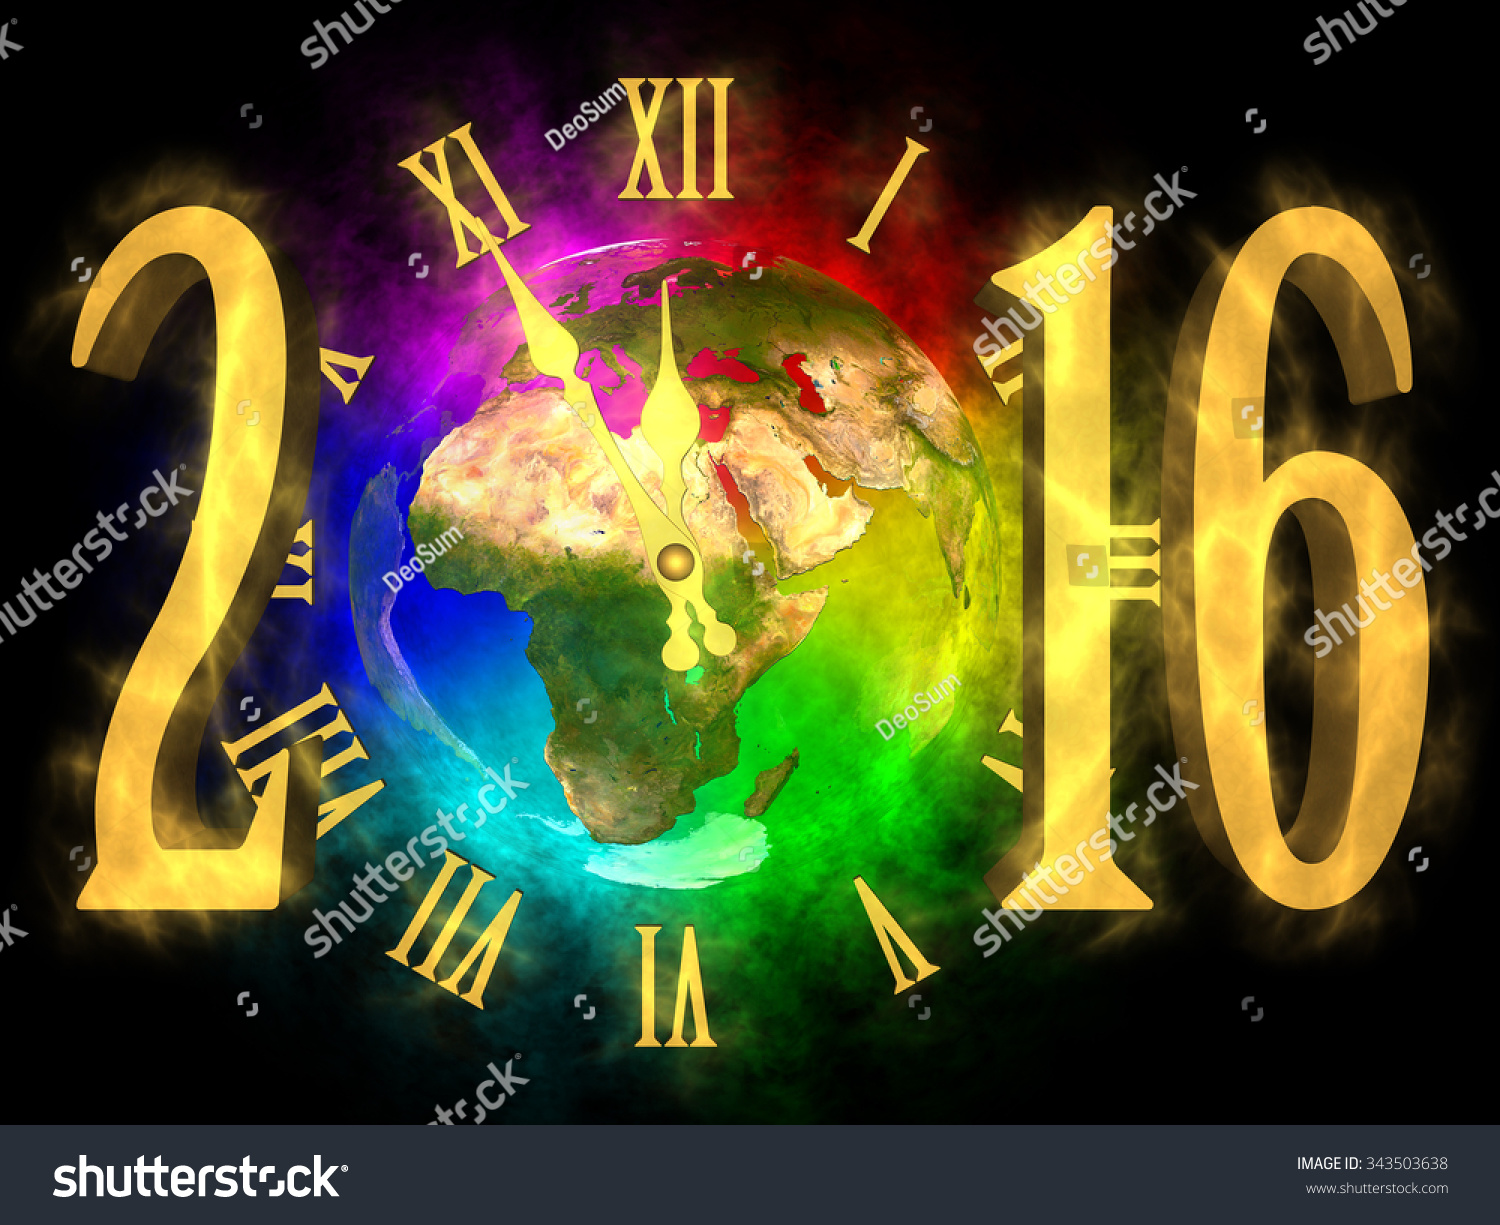 Happy new year 2016 europe asia and africa stock photo 343503638 shutterstock - Happy new year sound europe ...